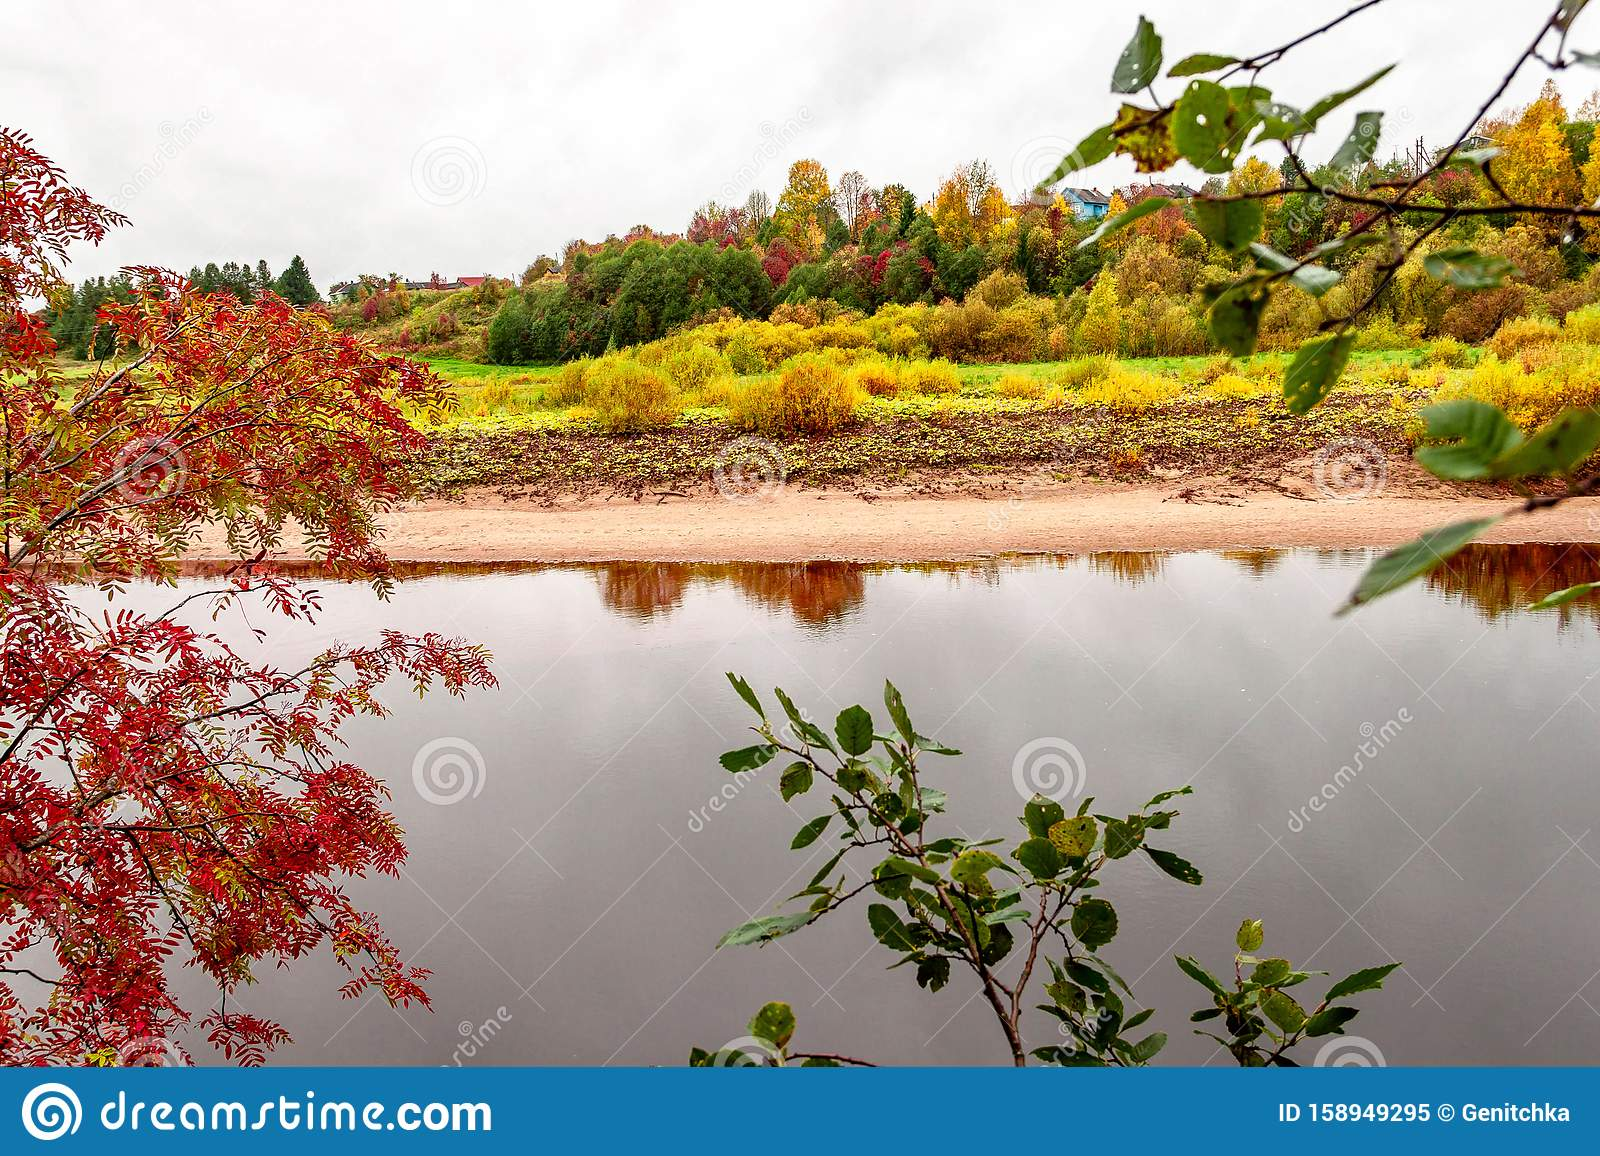 Natural autumn landscape with village view on river shore on natural fall rowan mountain ash tree background